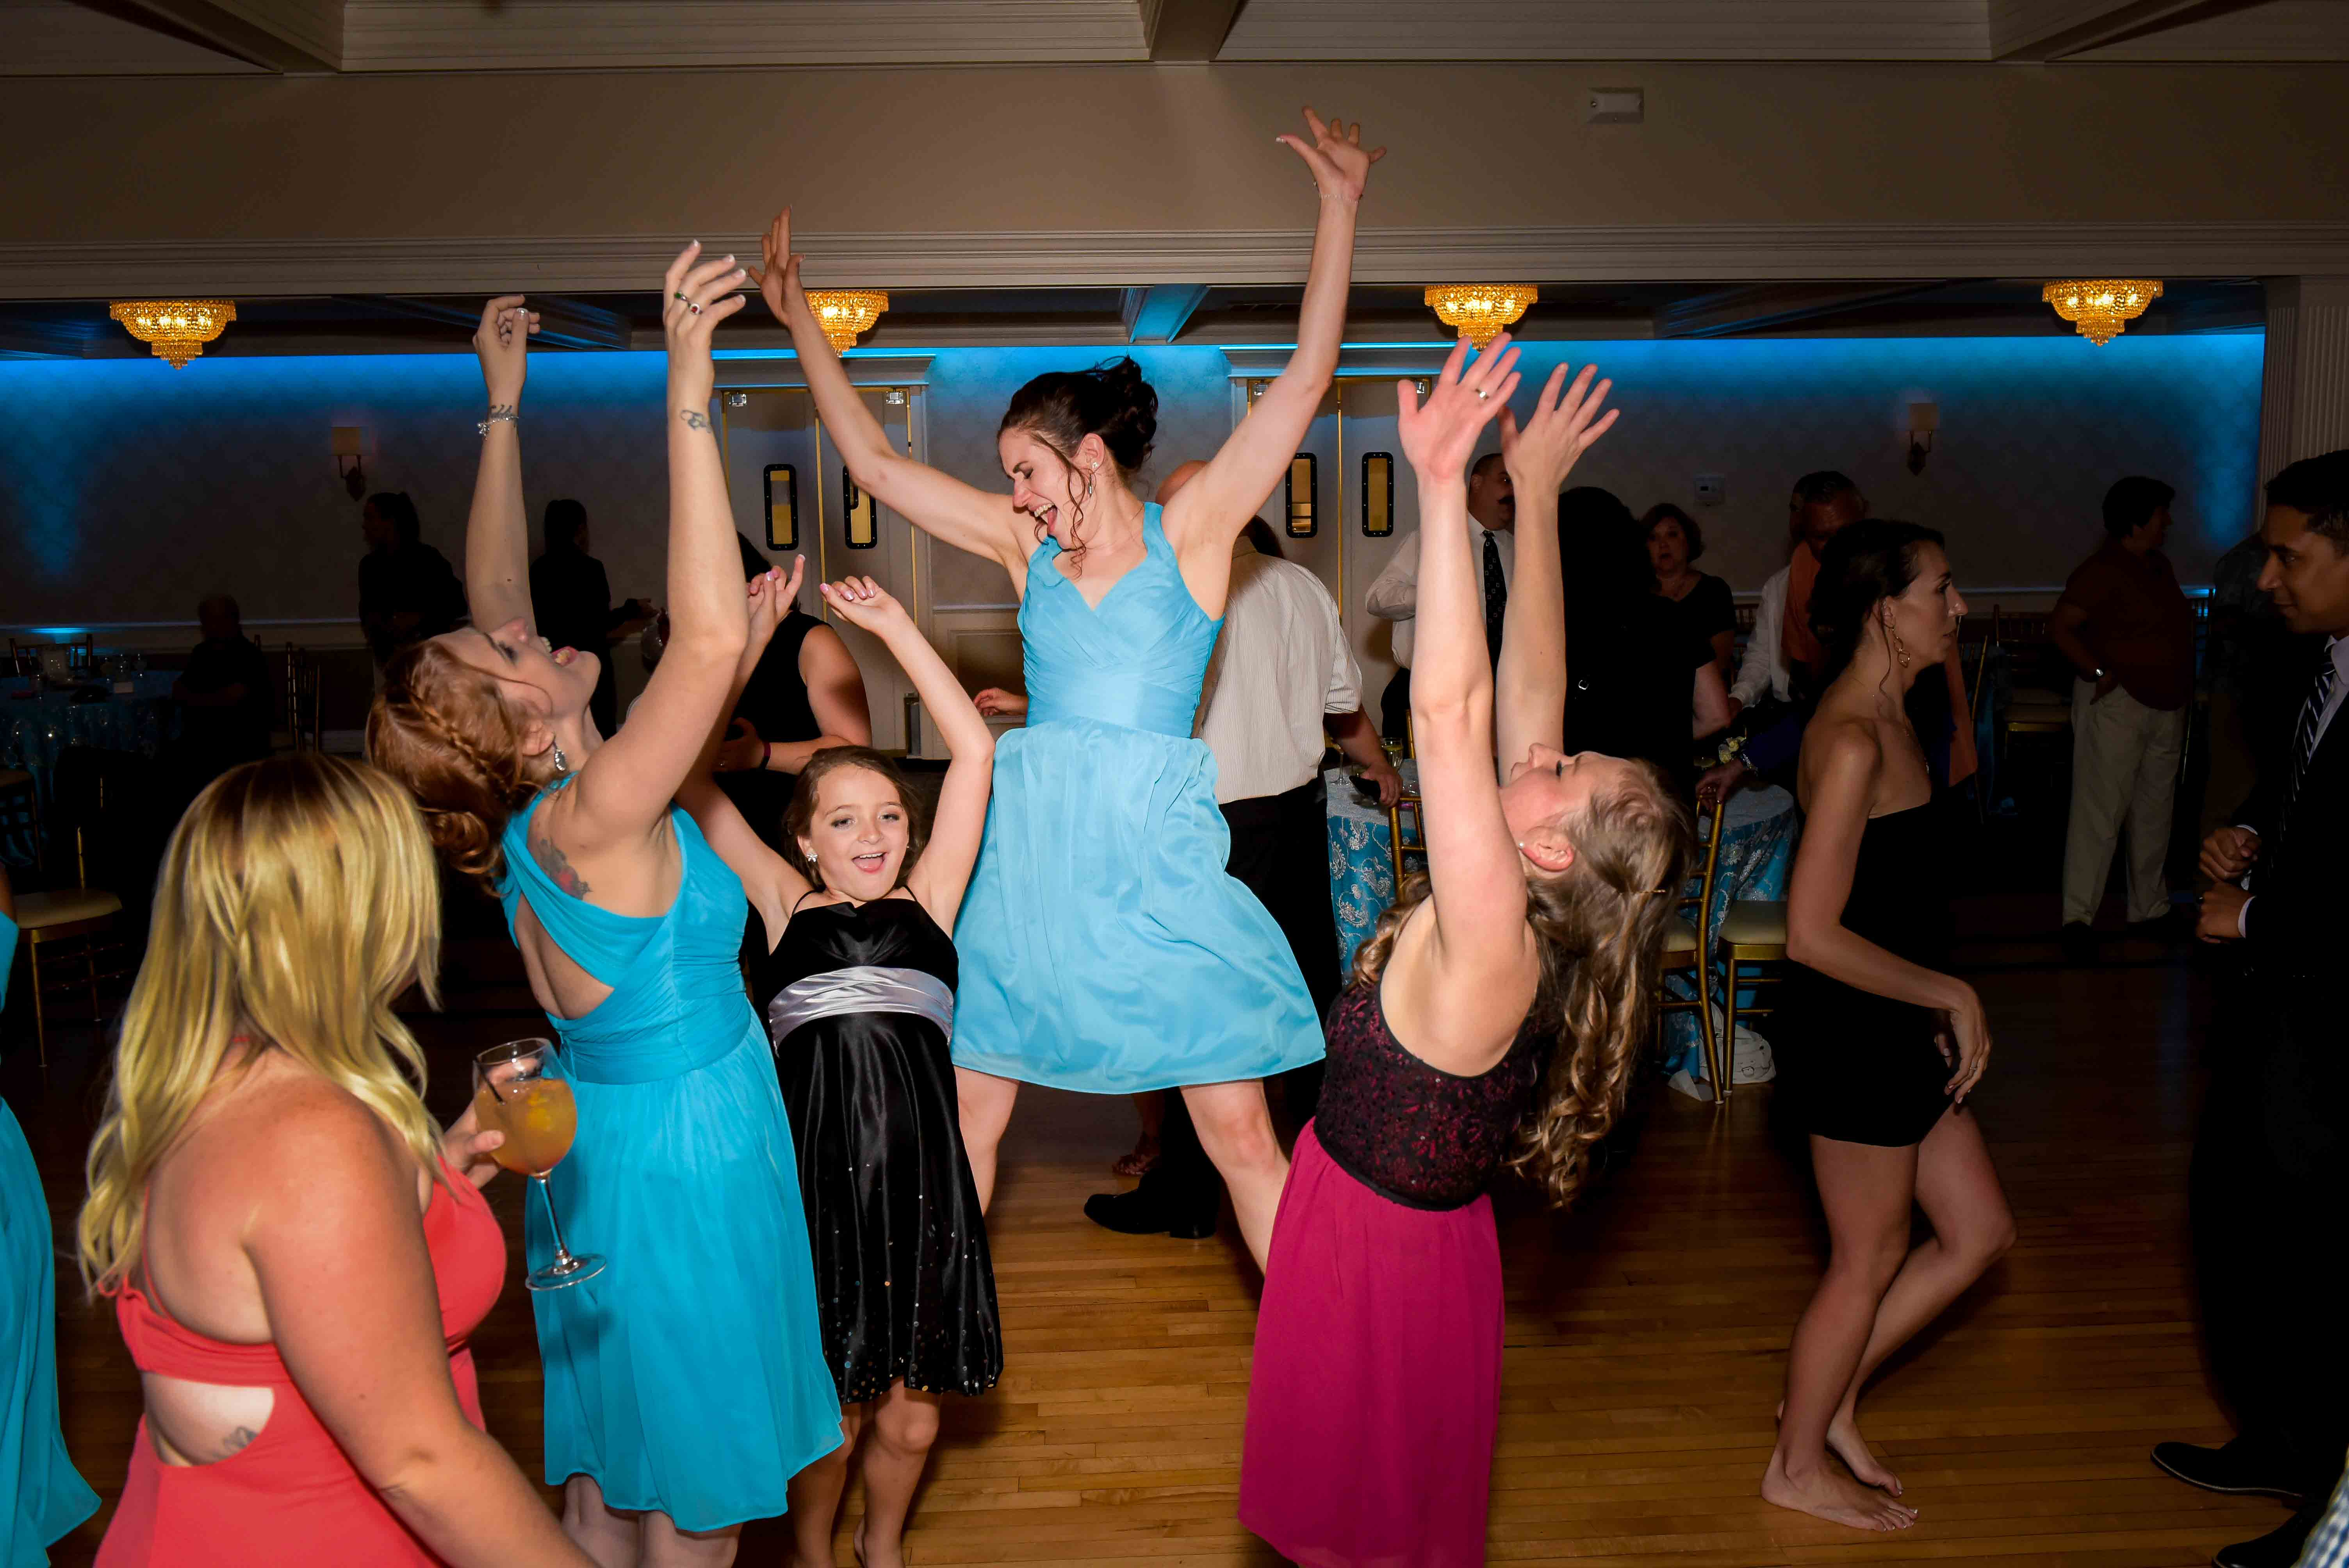 fun dance party at wedding reception by Q Hegarty Photography the best wedding photographer near Mount Sunapee Resort Newbury, Nh